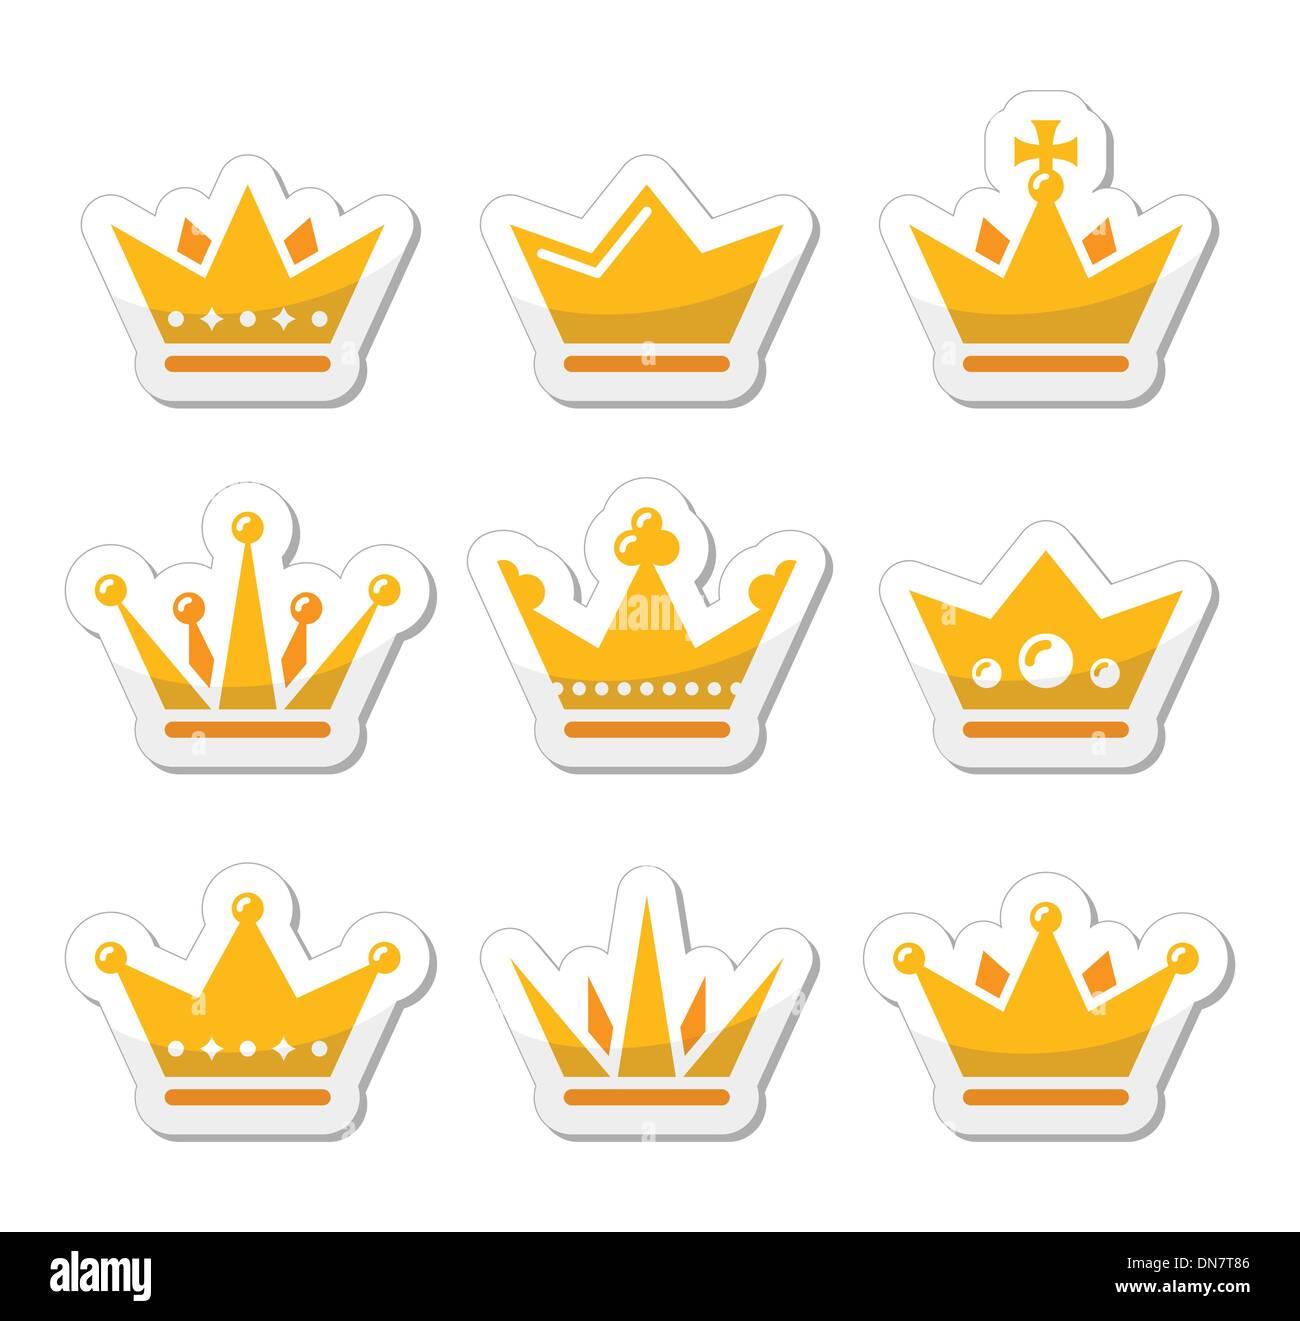 Crown, royal family icons set - Stock Image